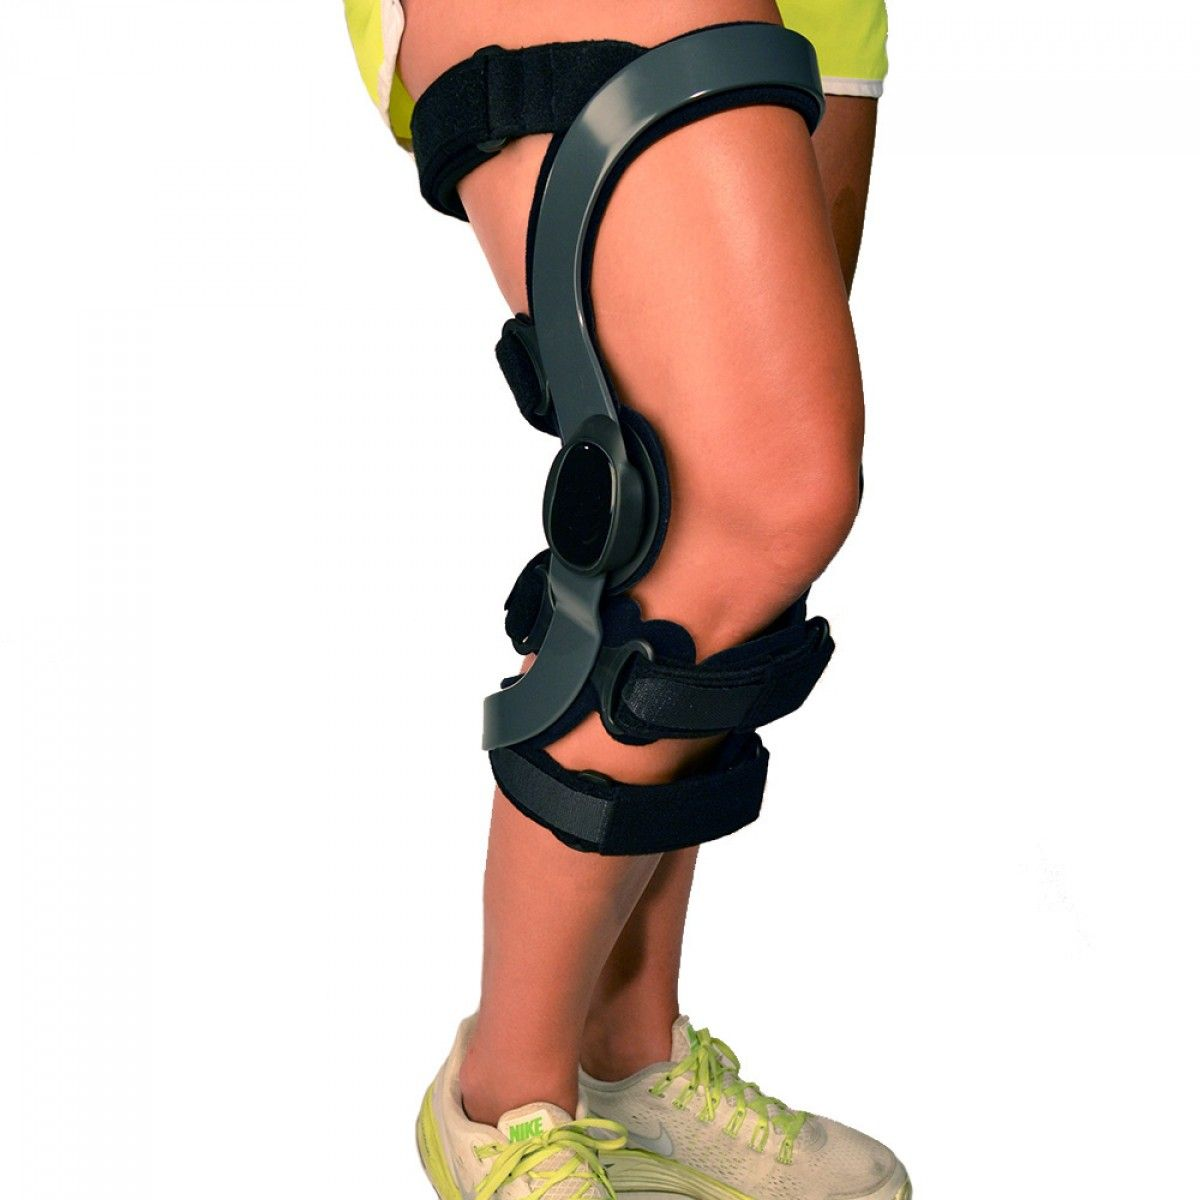 Braceability Functional Acl Tear Knee Brace This Acl Knee Brace